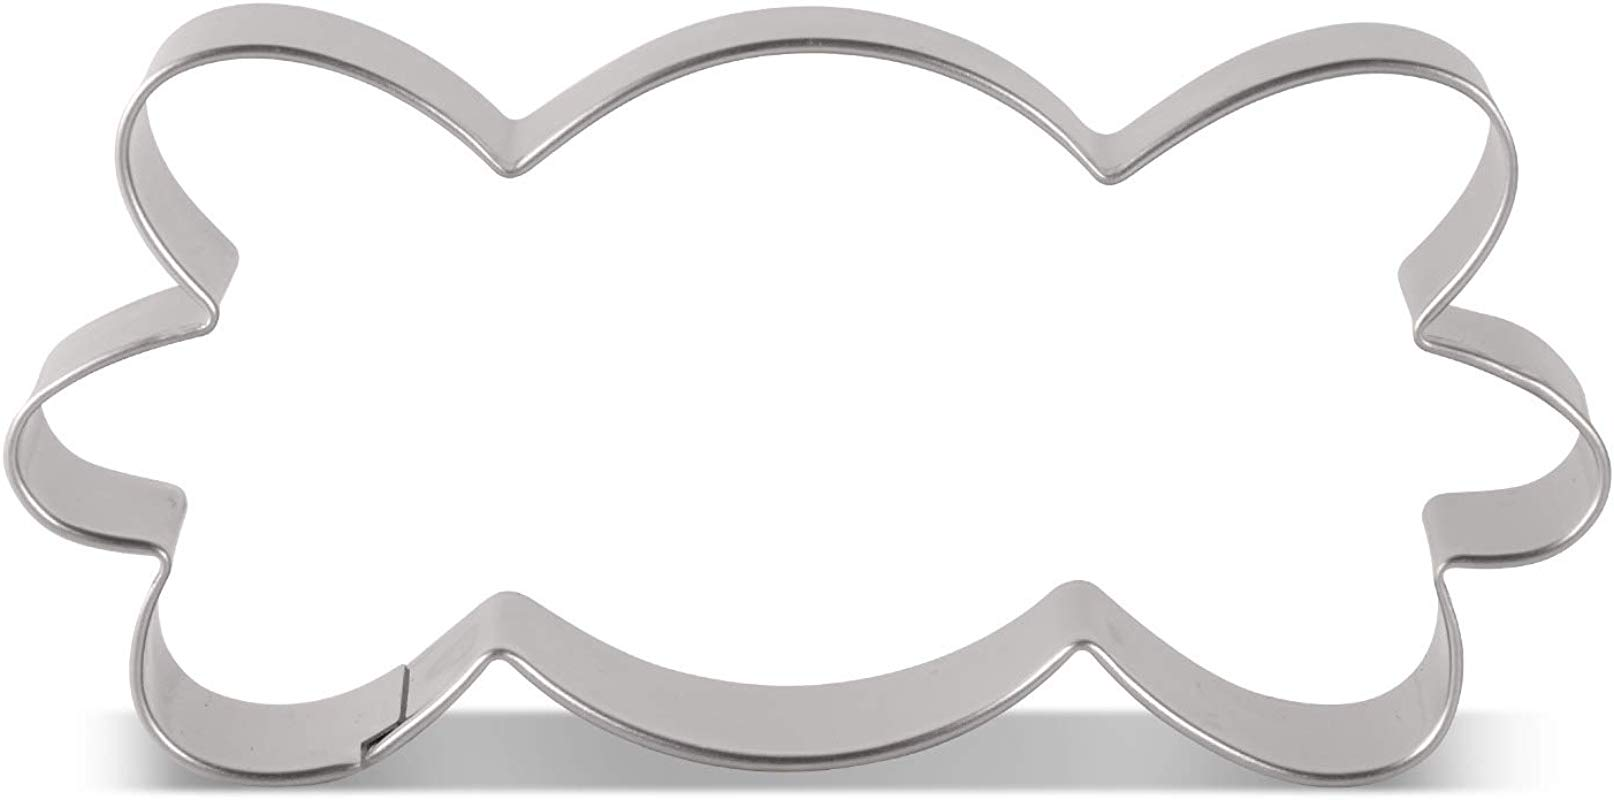 LILIAO Trick Or Treat Candy Cookie Cutter For Halloween 4 1 X 2 3 Inches Stainless Steel